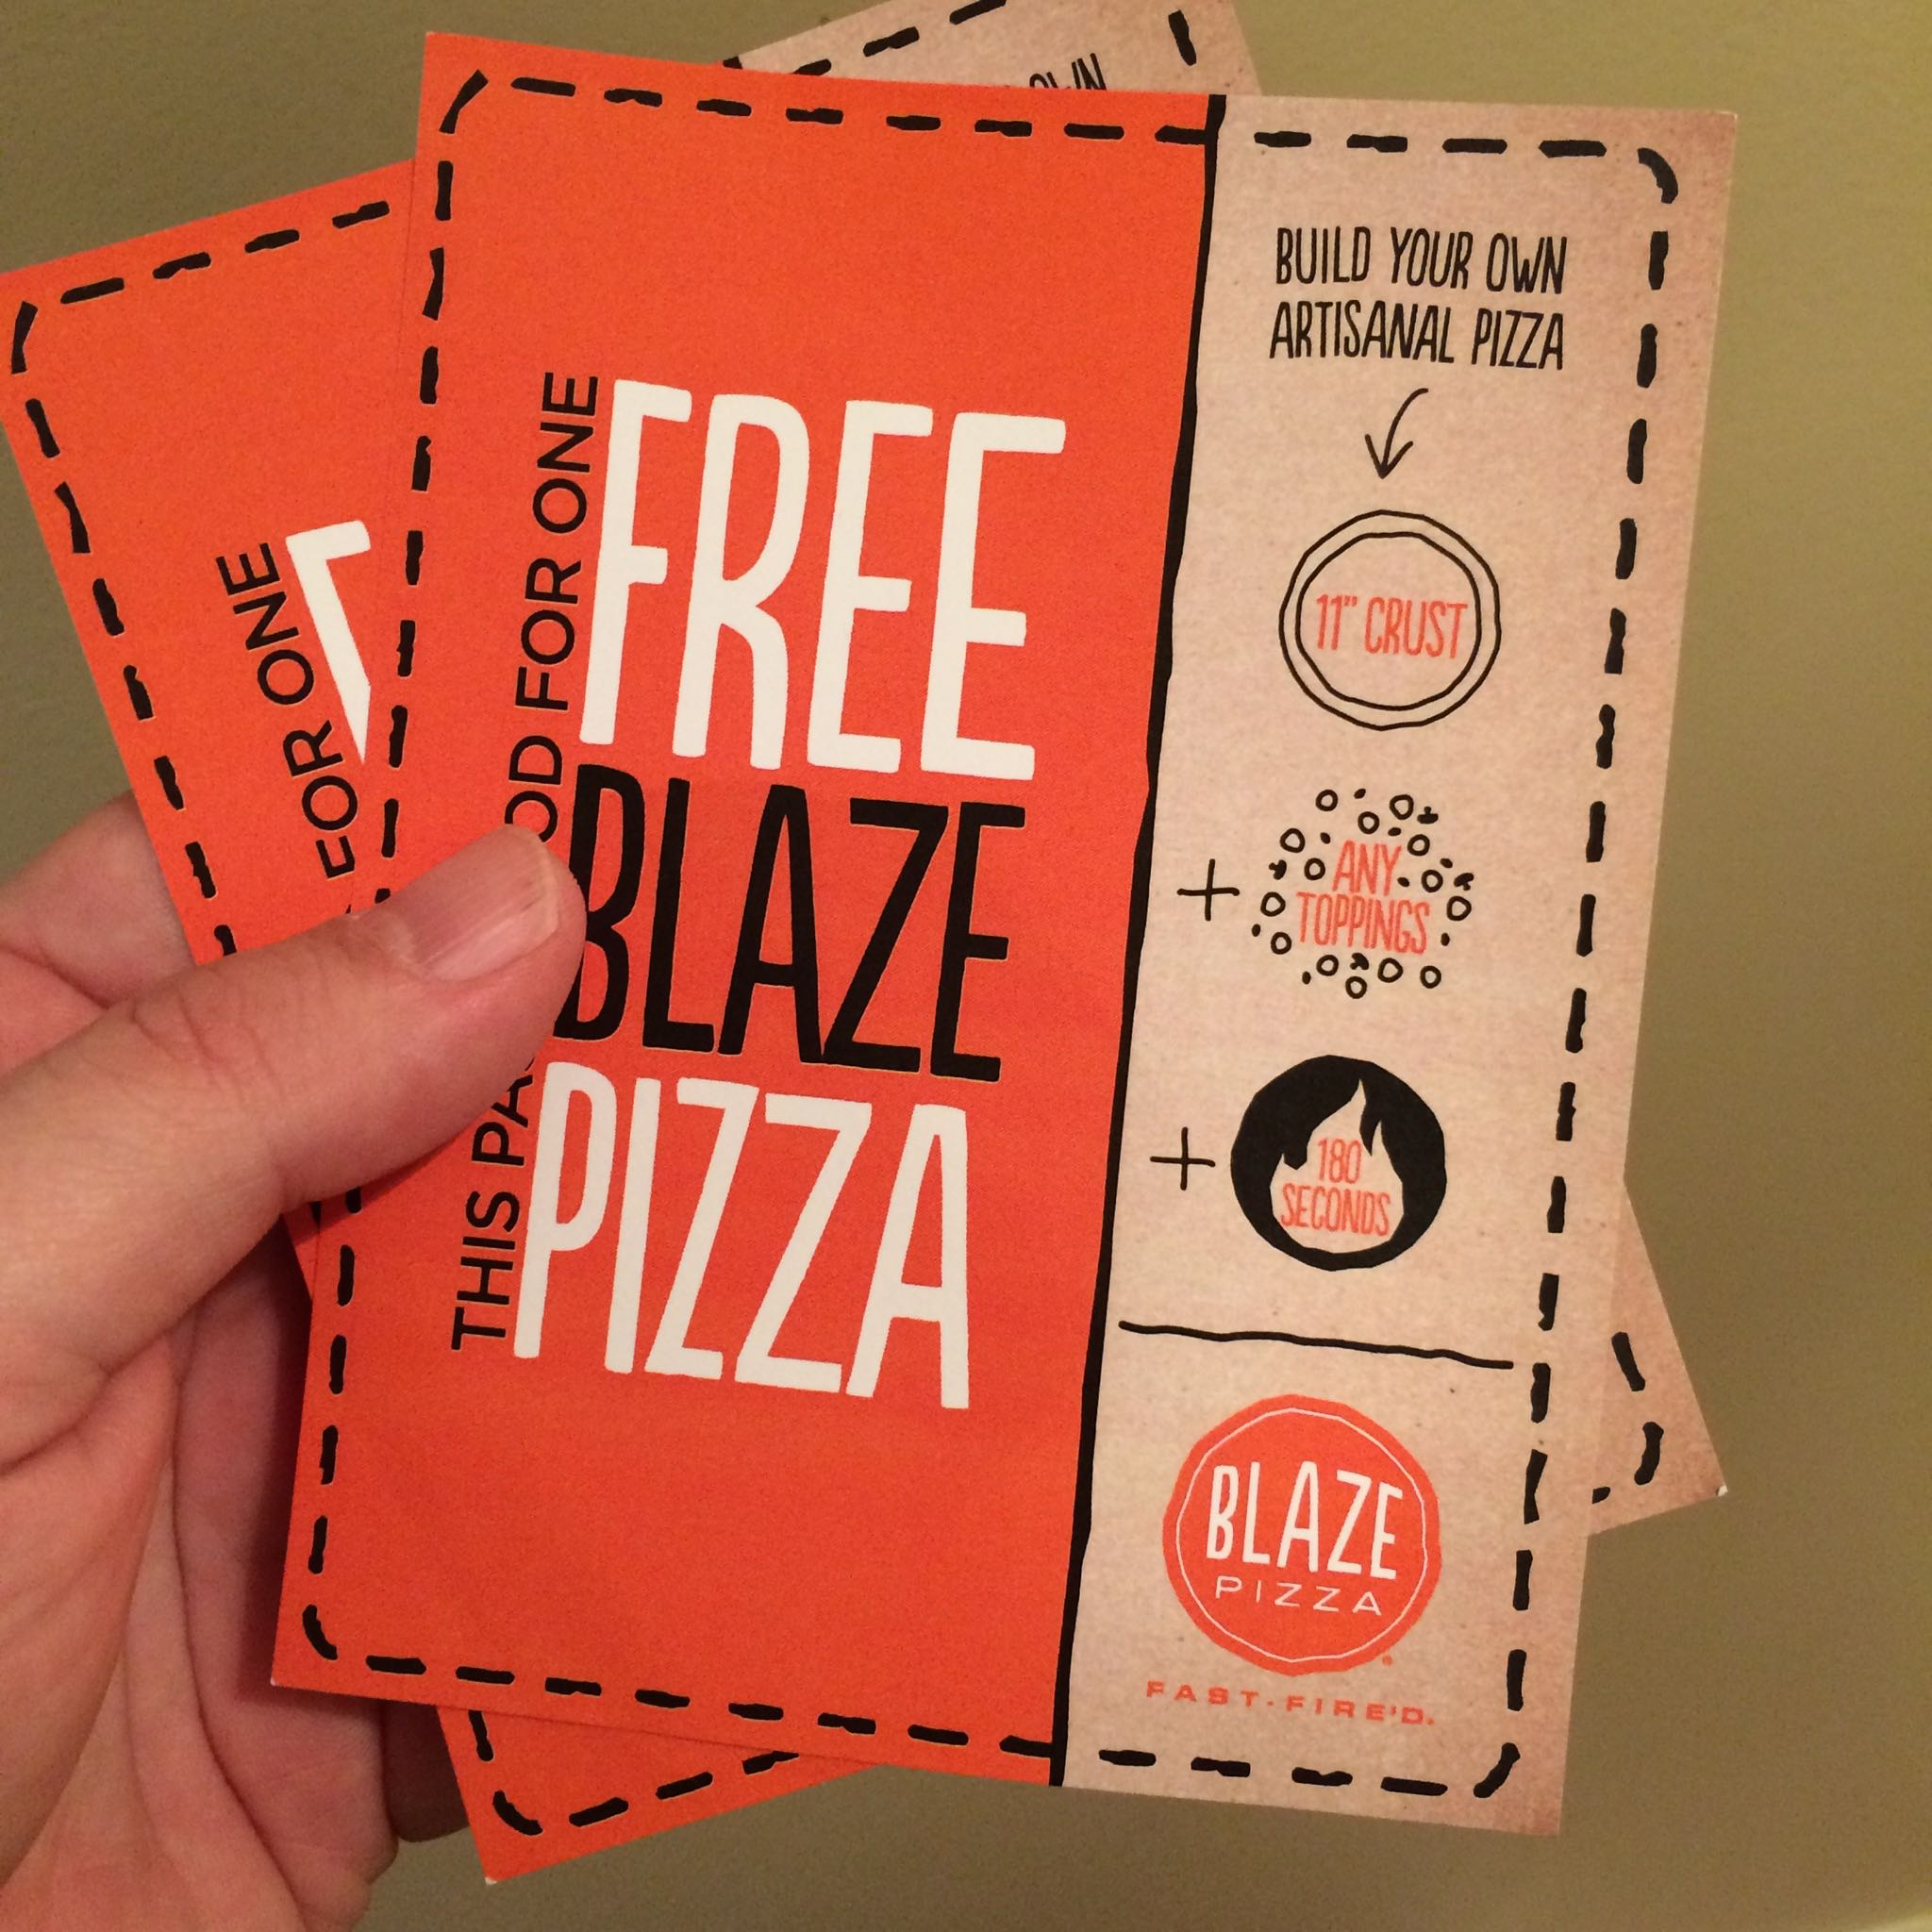 Blaze pizza coupon code